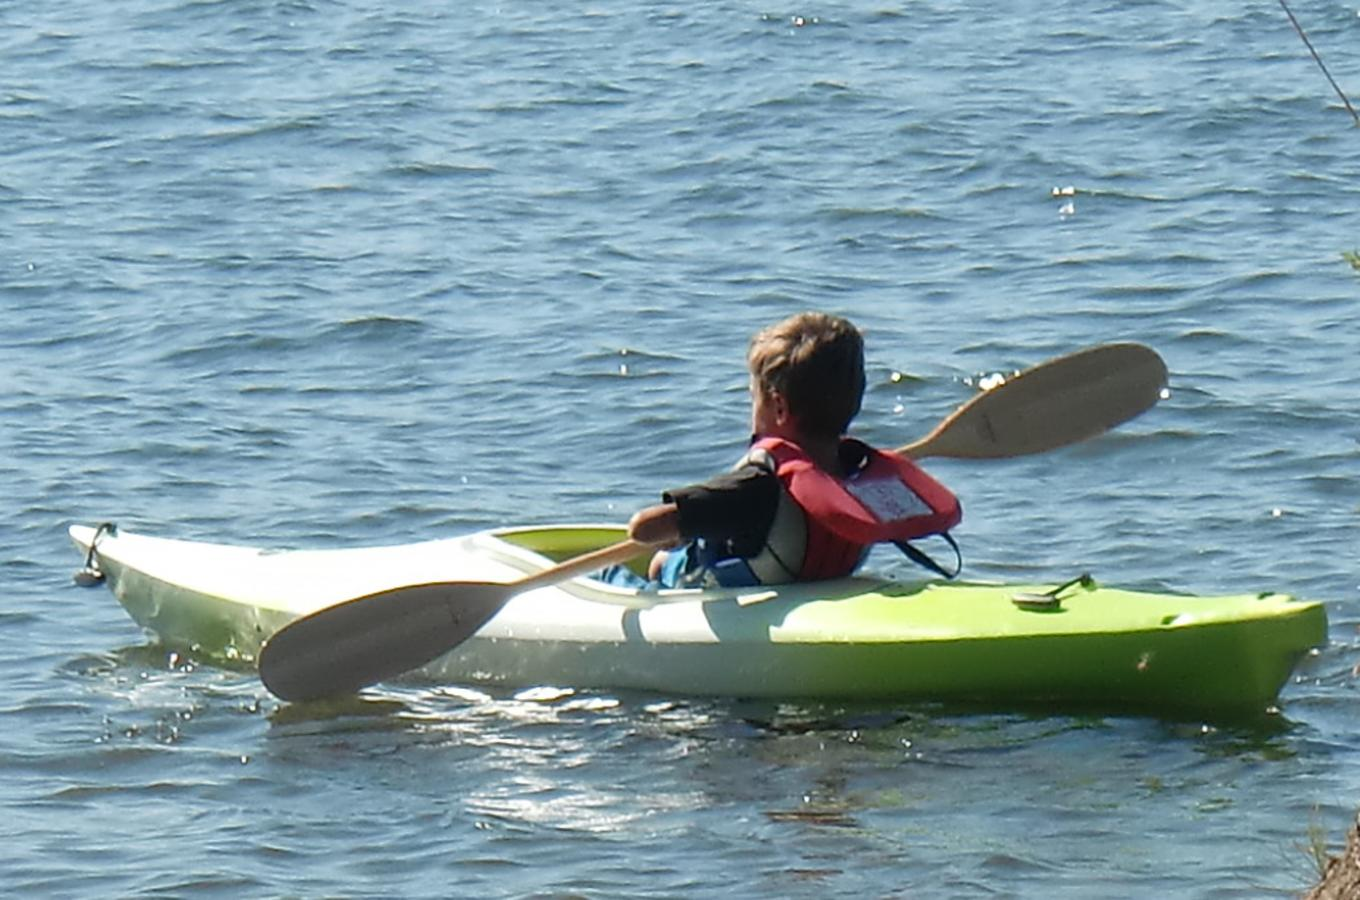 Boy in Kayak